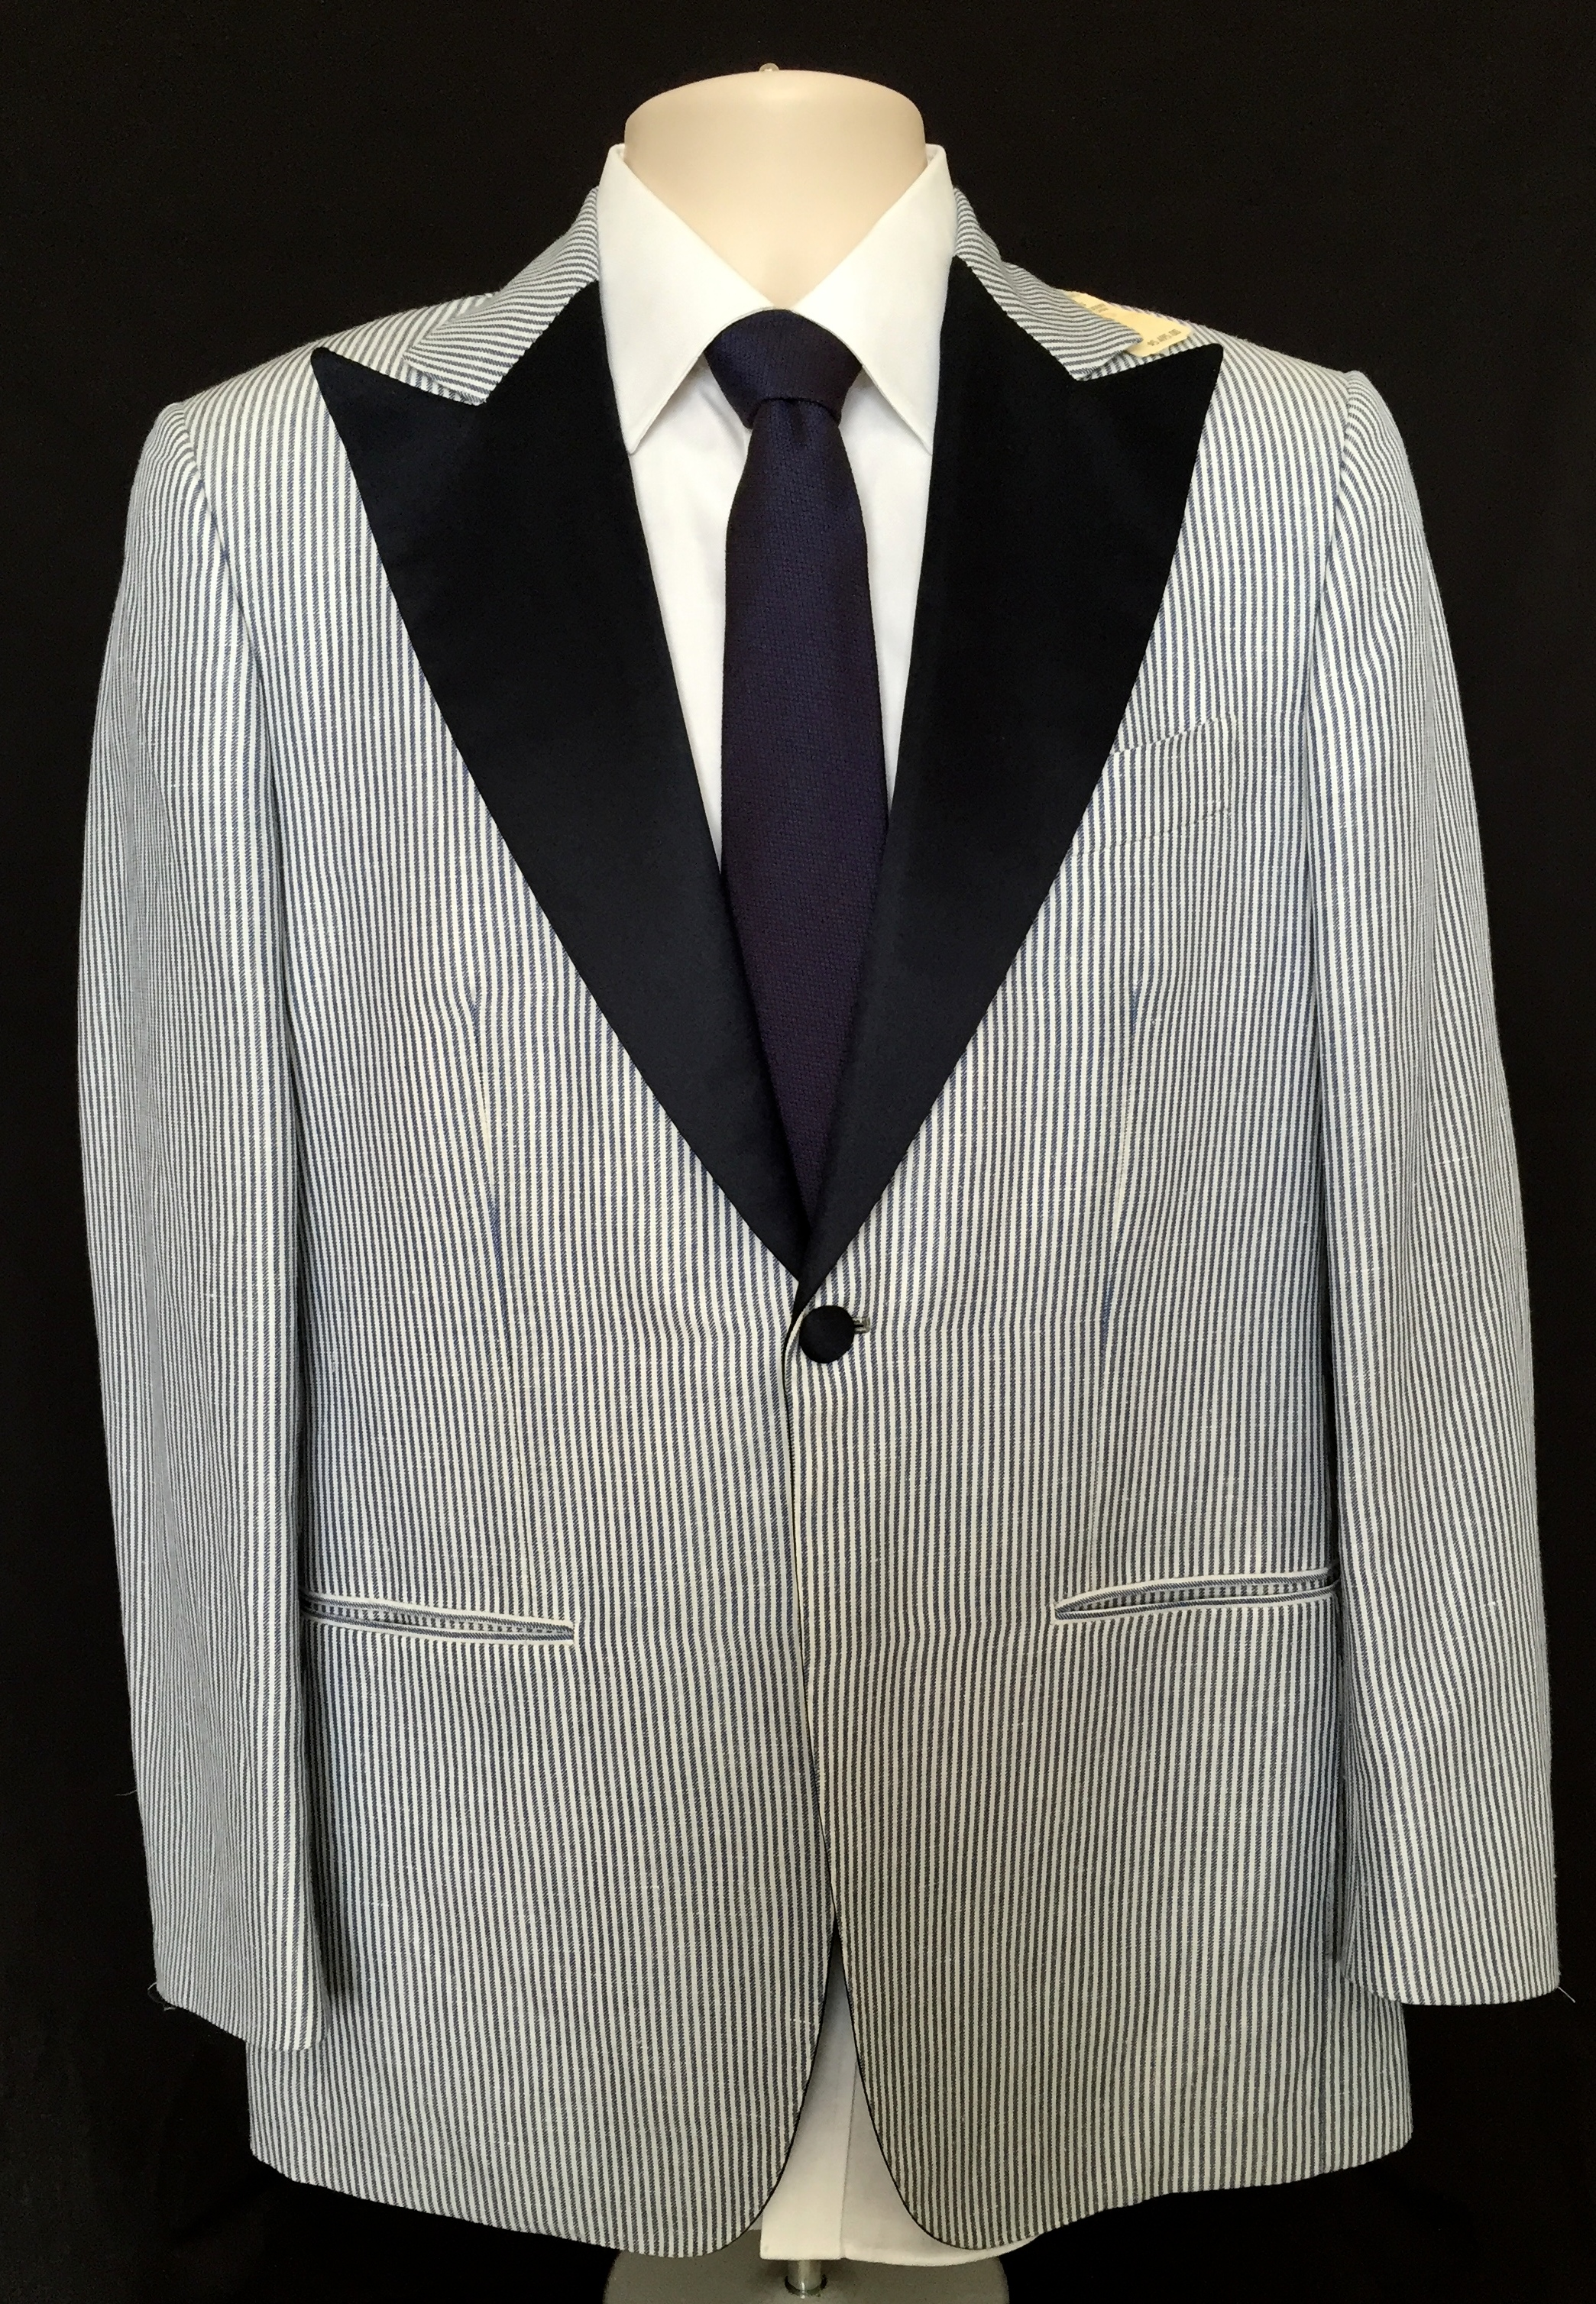 0c19bb5601d Kiton $5,495 Peak Lapel Smoking Jacket | Grailed